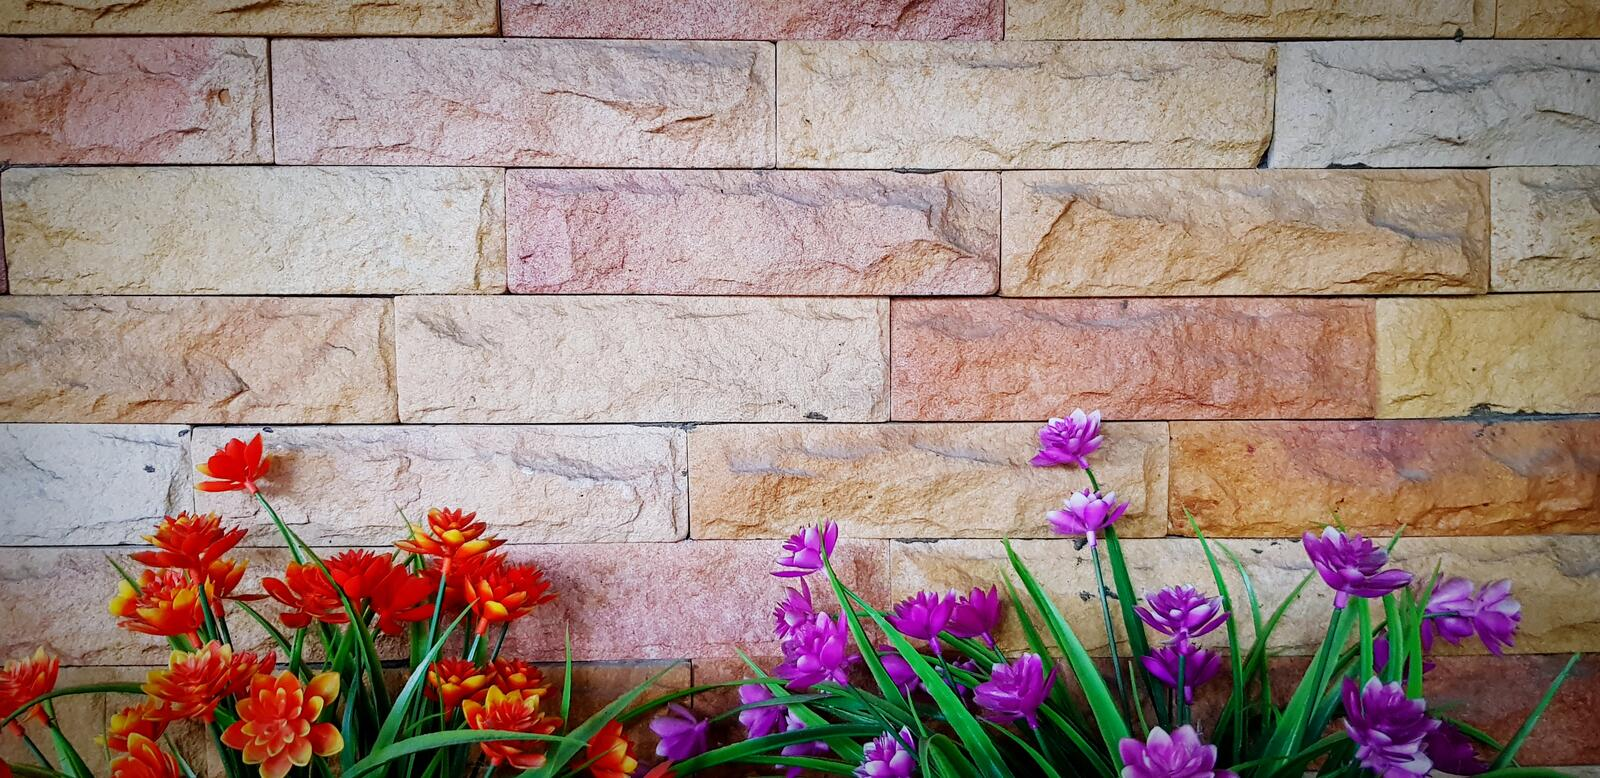 Beautiful orange or red flower and purple or violet flower blooming on grunge brick wall or wallpaper stock images